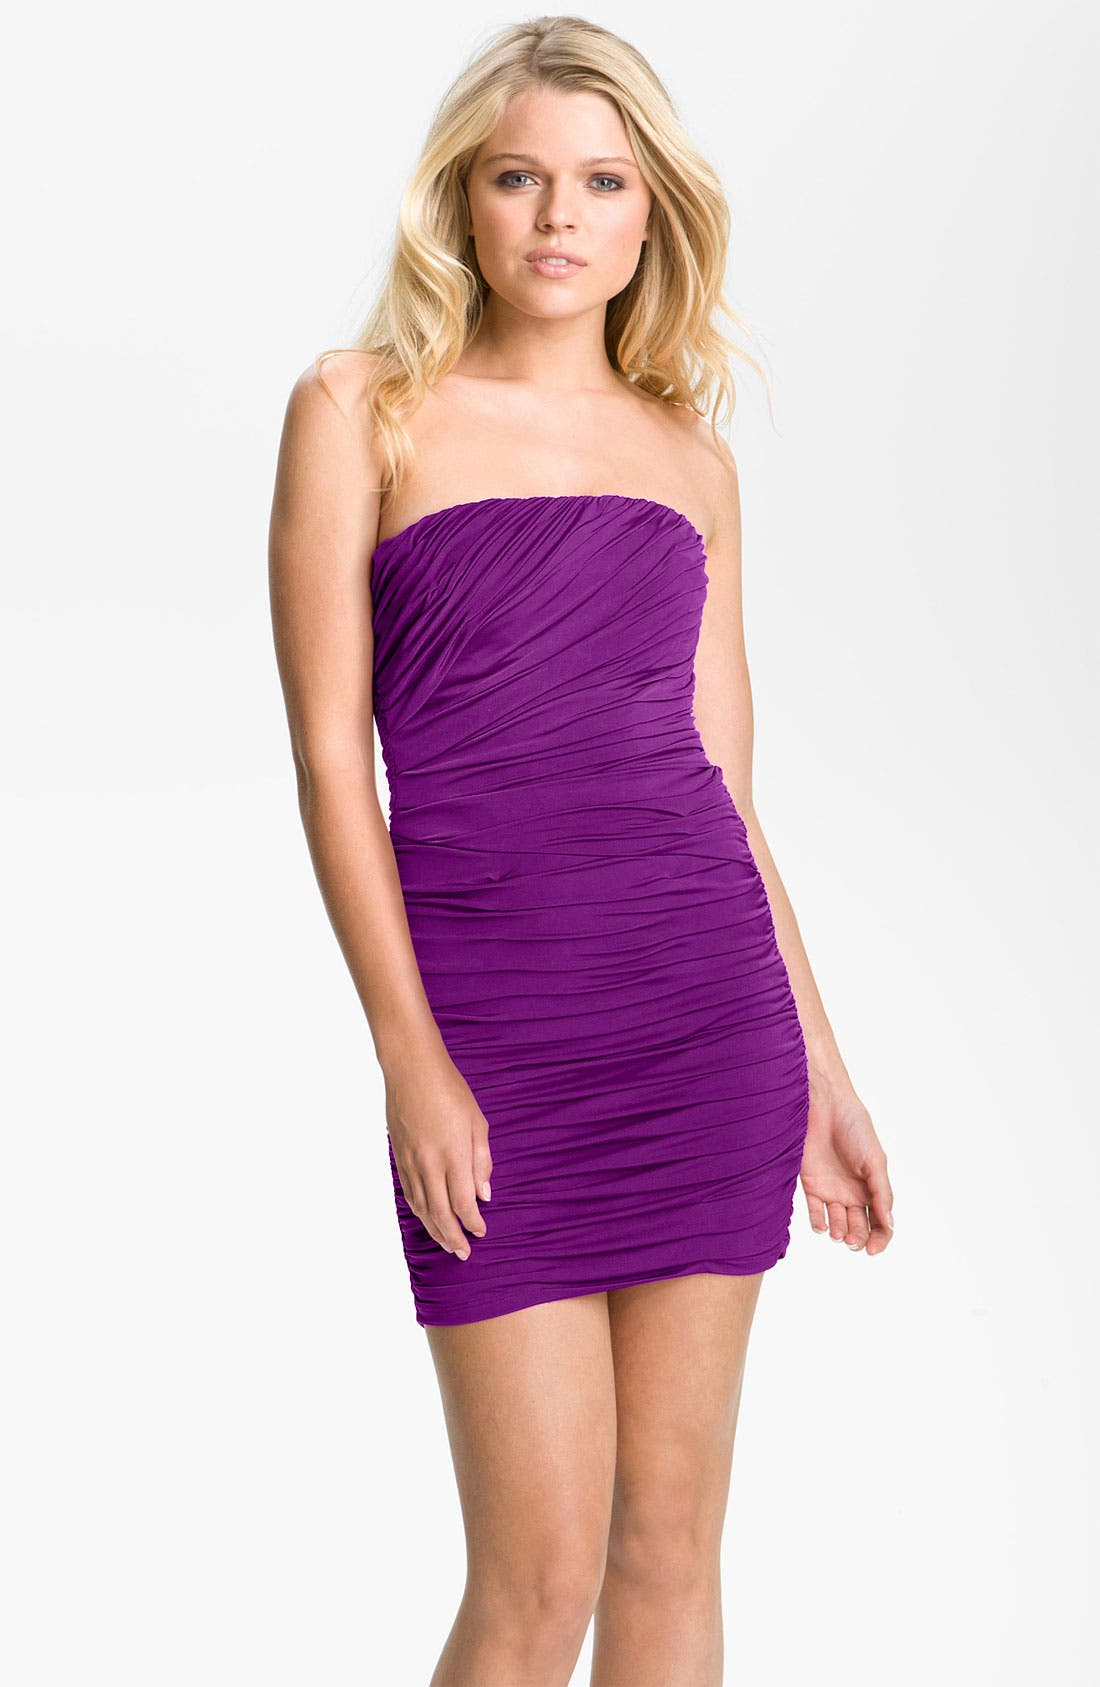 Alternate Image 1 Selected - Jessica McClintock Strapless Ruched Minidress